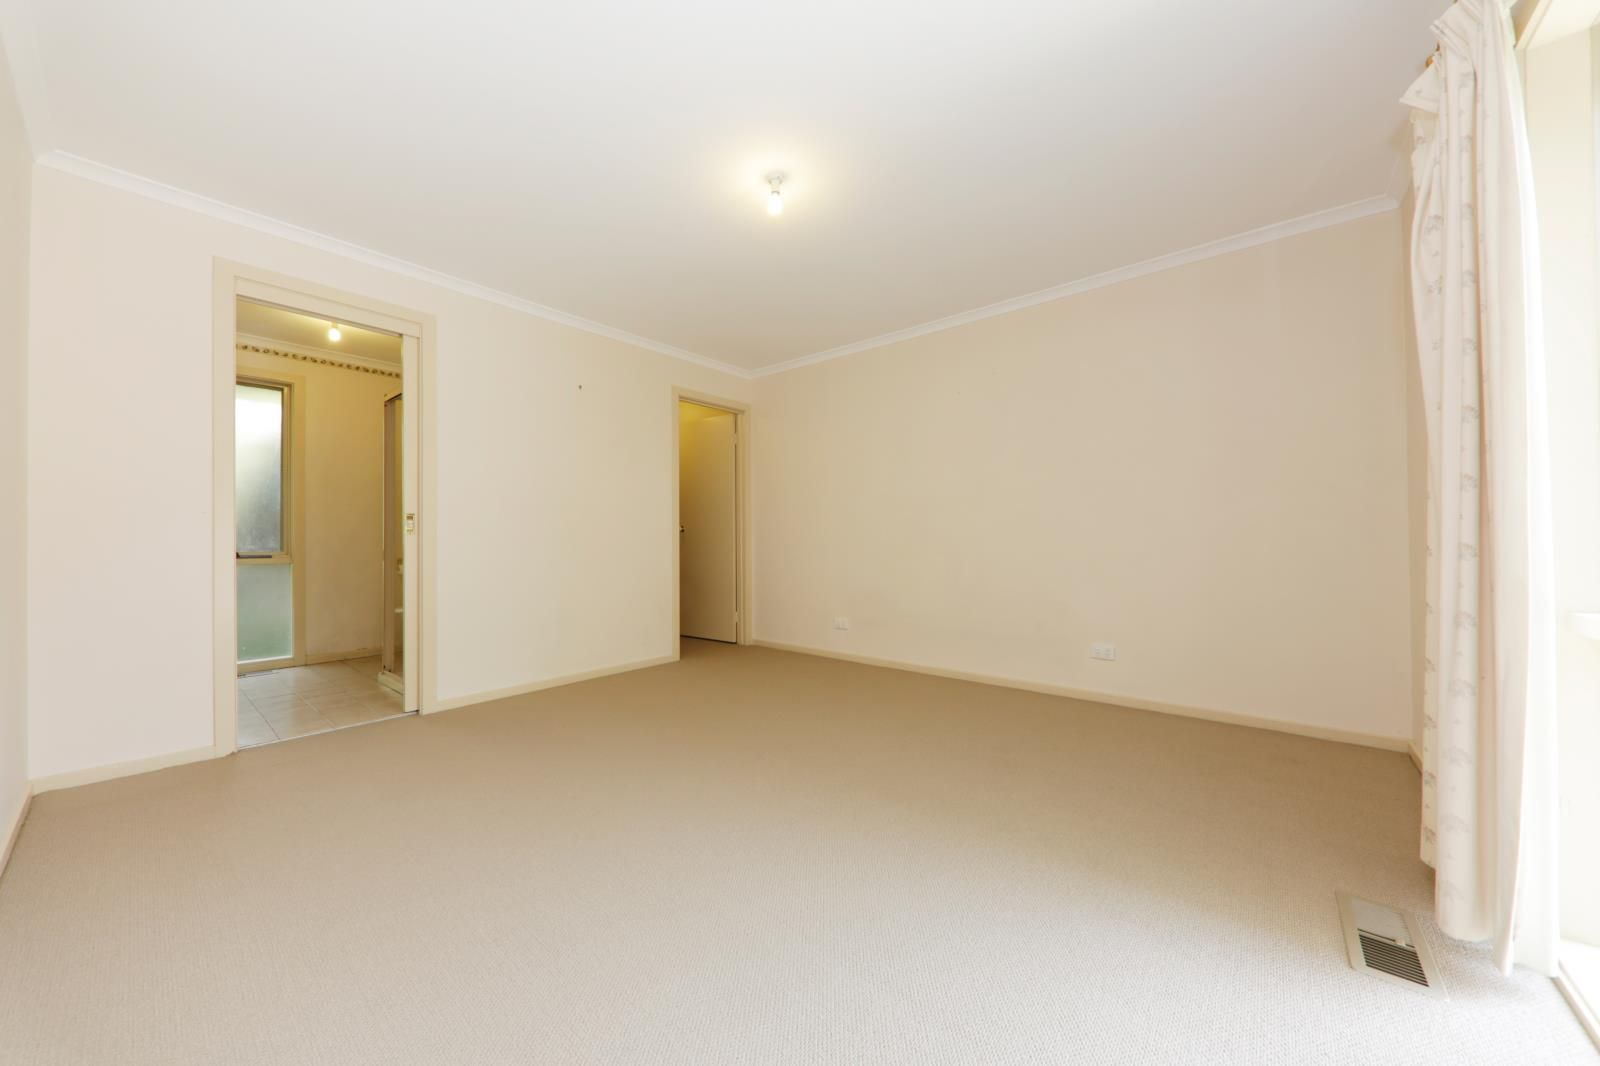 2/202 Lawrence Rd, Mount Waverley VIC 3149, Image 1